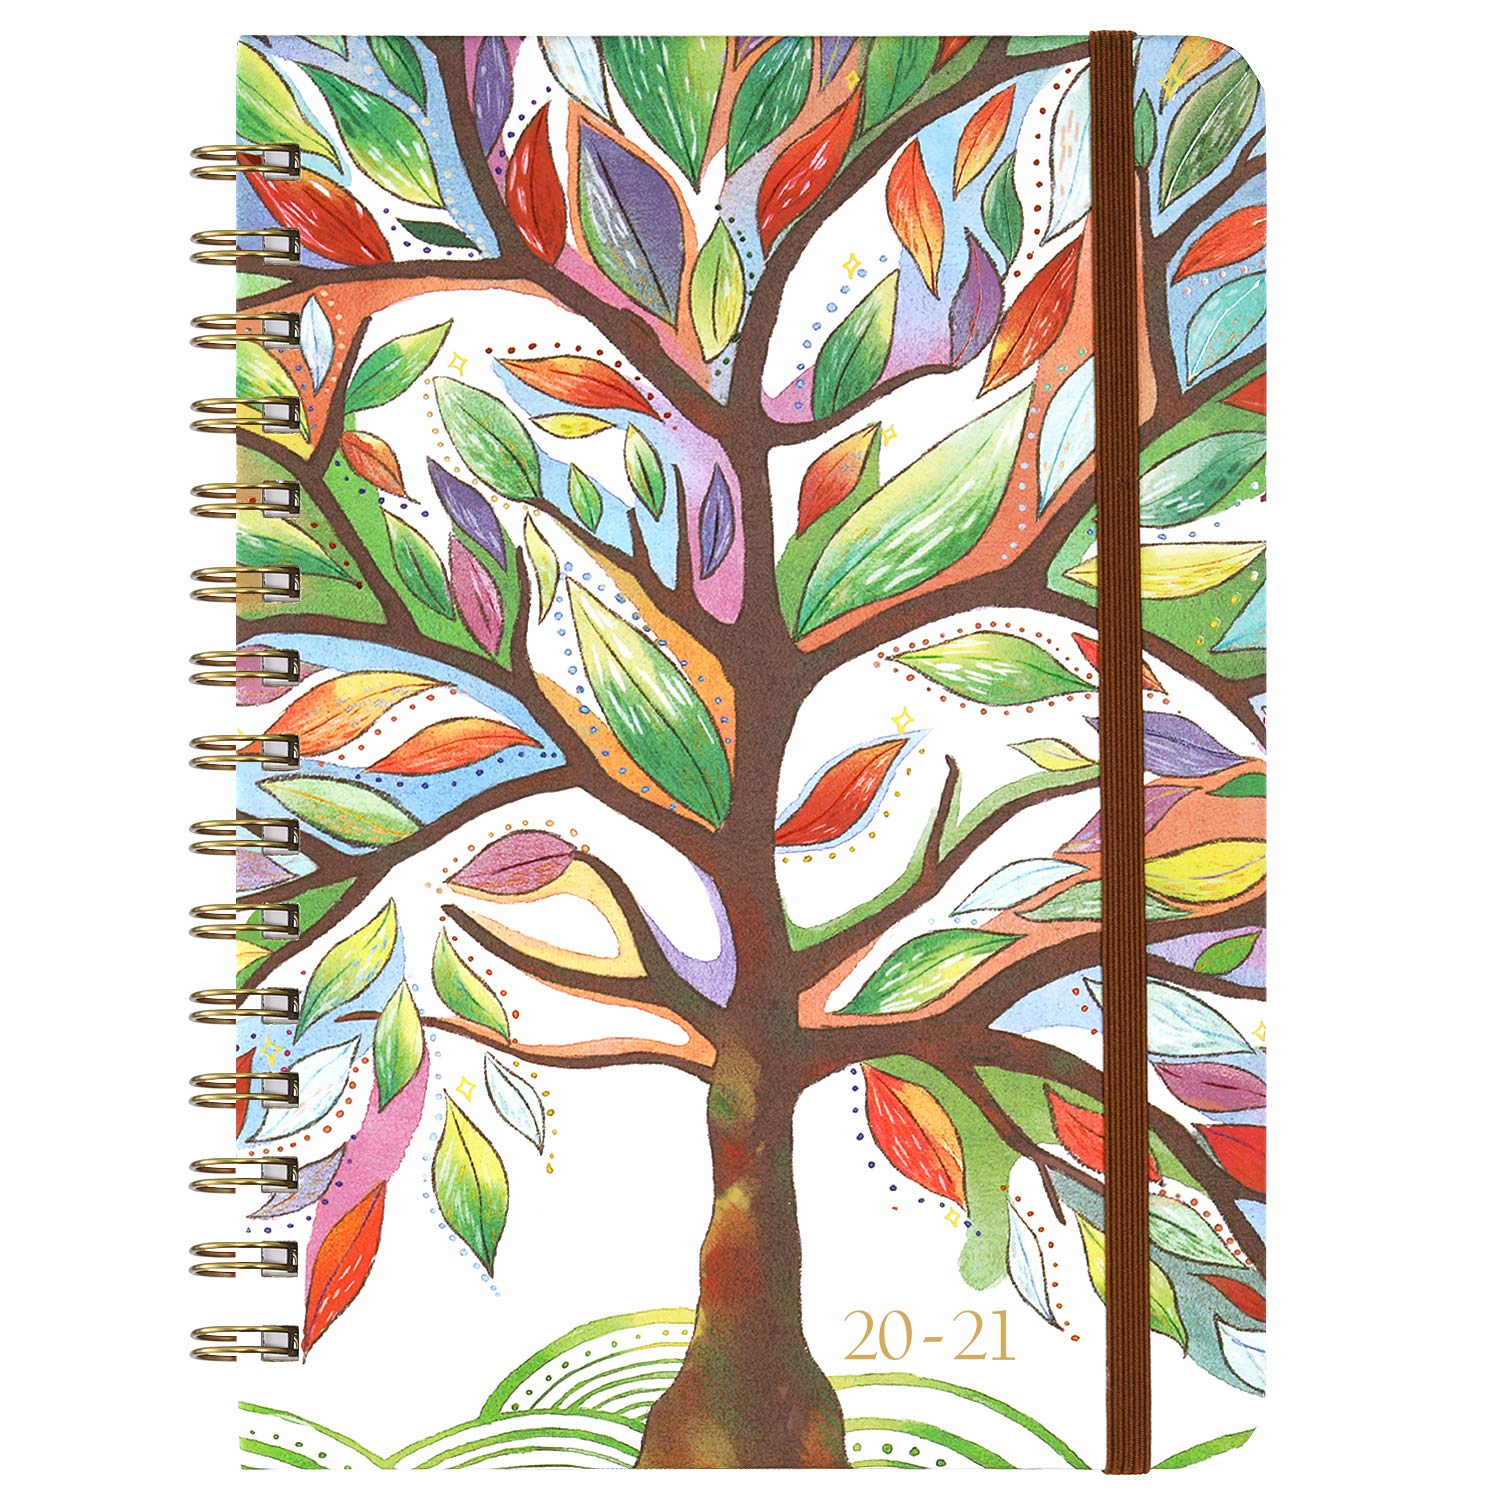 """Planner 2020-2021 - Academic Weekly & Monthly Planner with Tabs, 6.5"""" x 8.5"""", July 2020 - June 2021, Hardcover with Back Pocket + Thick Paper + Banded, Twin-Wire Binding - Watercolor Tree"""